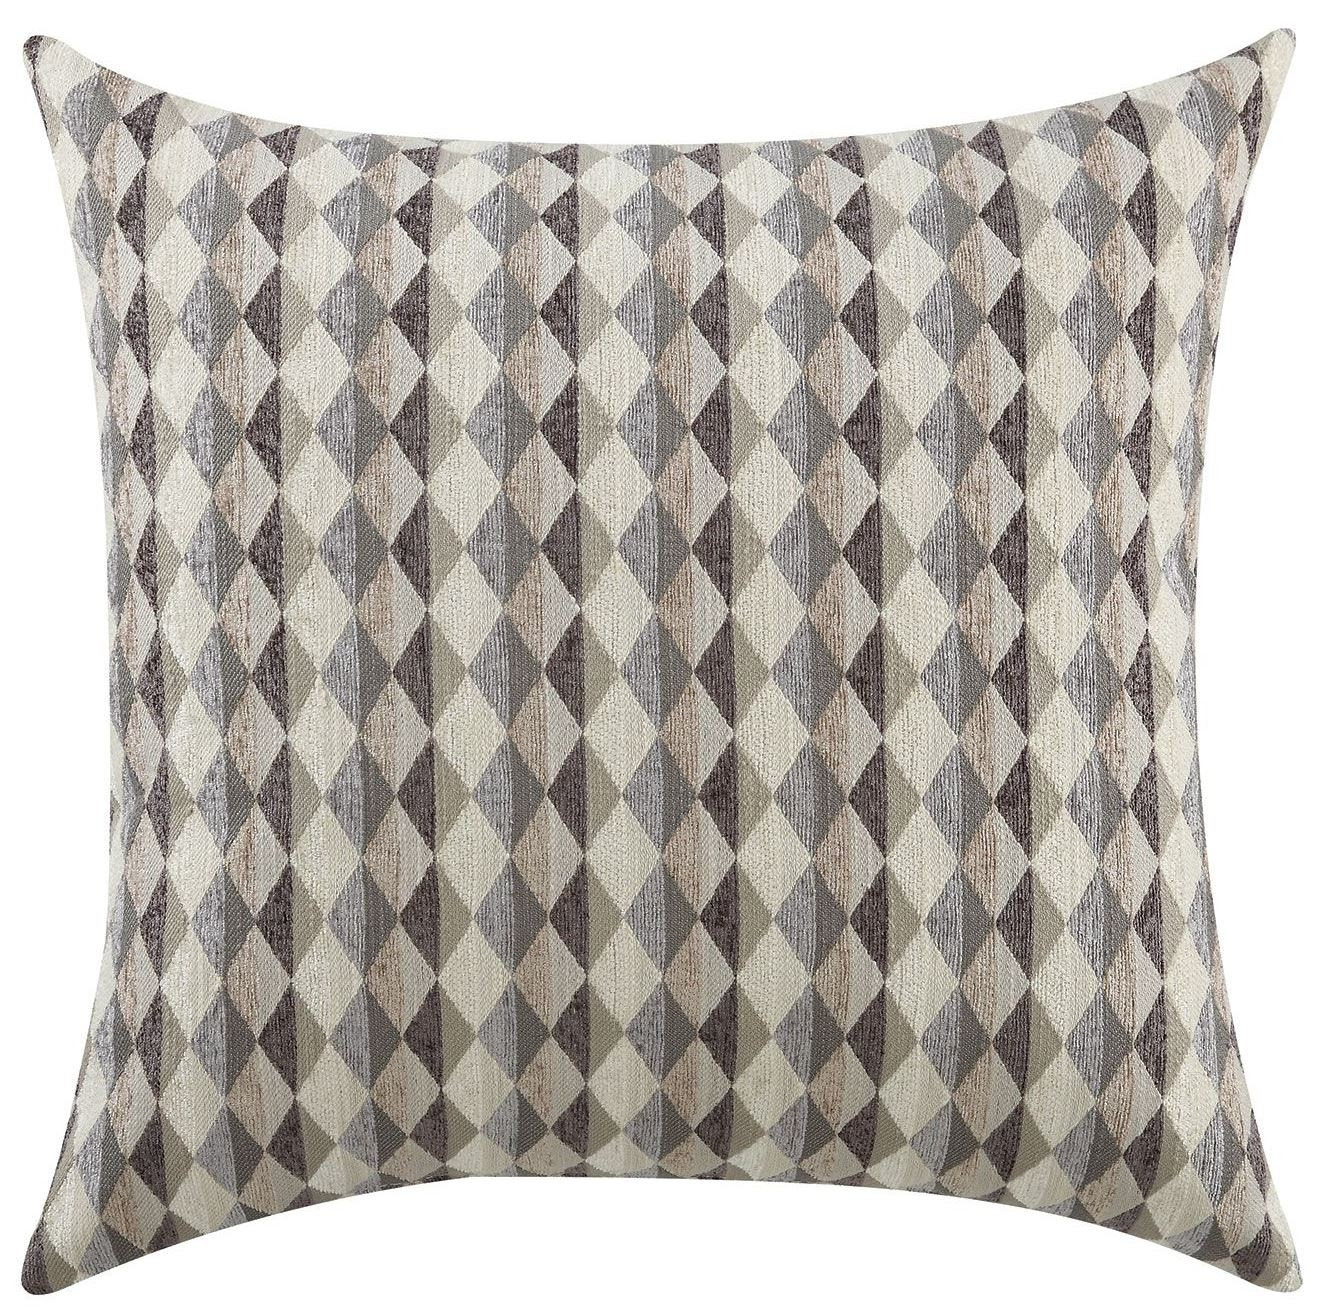 Grey Checkered Accent Pillow Set of 2 from Coaster (905100) Coleman Furniture